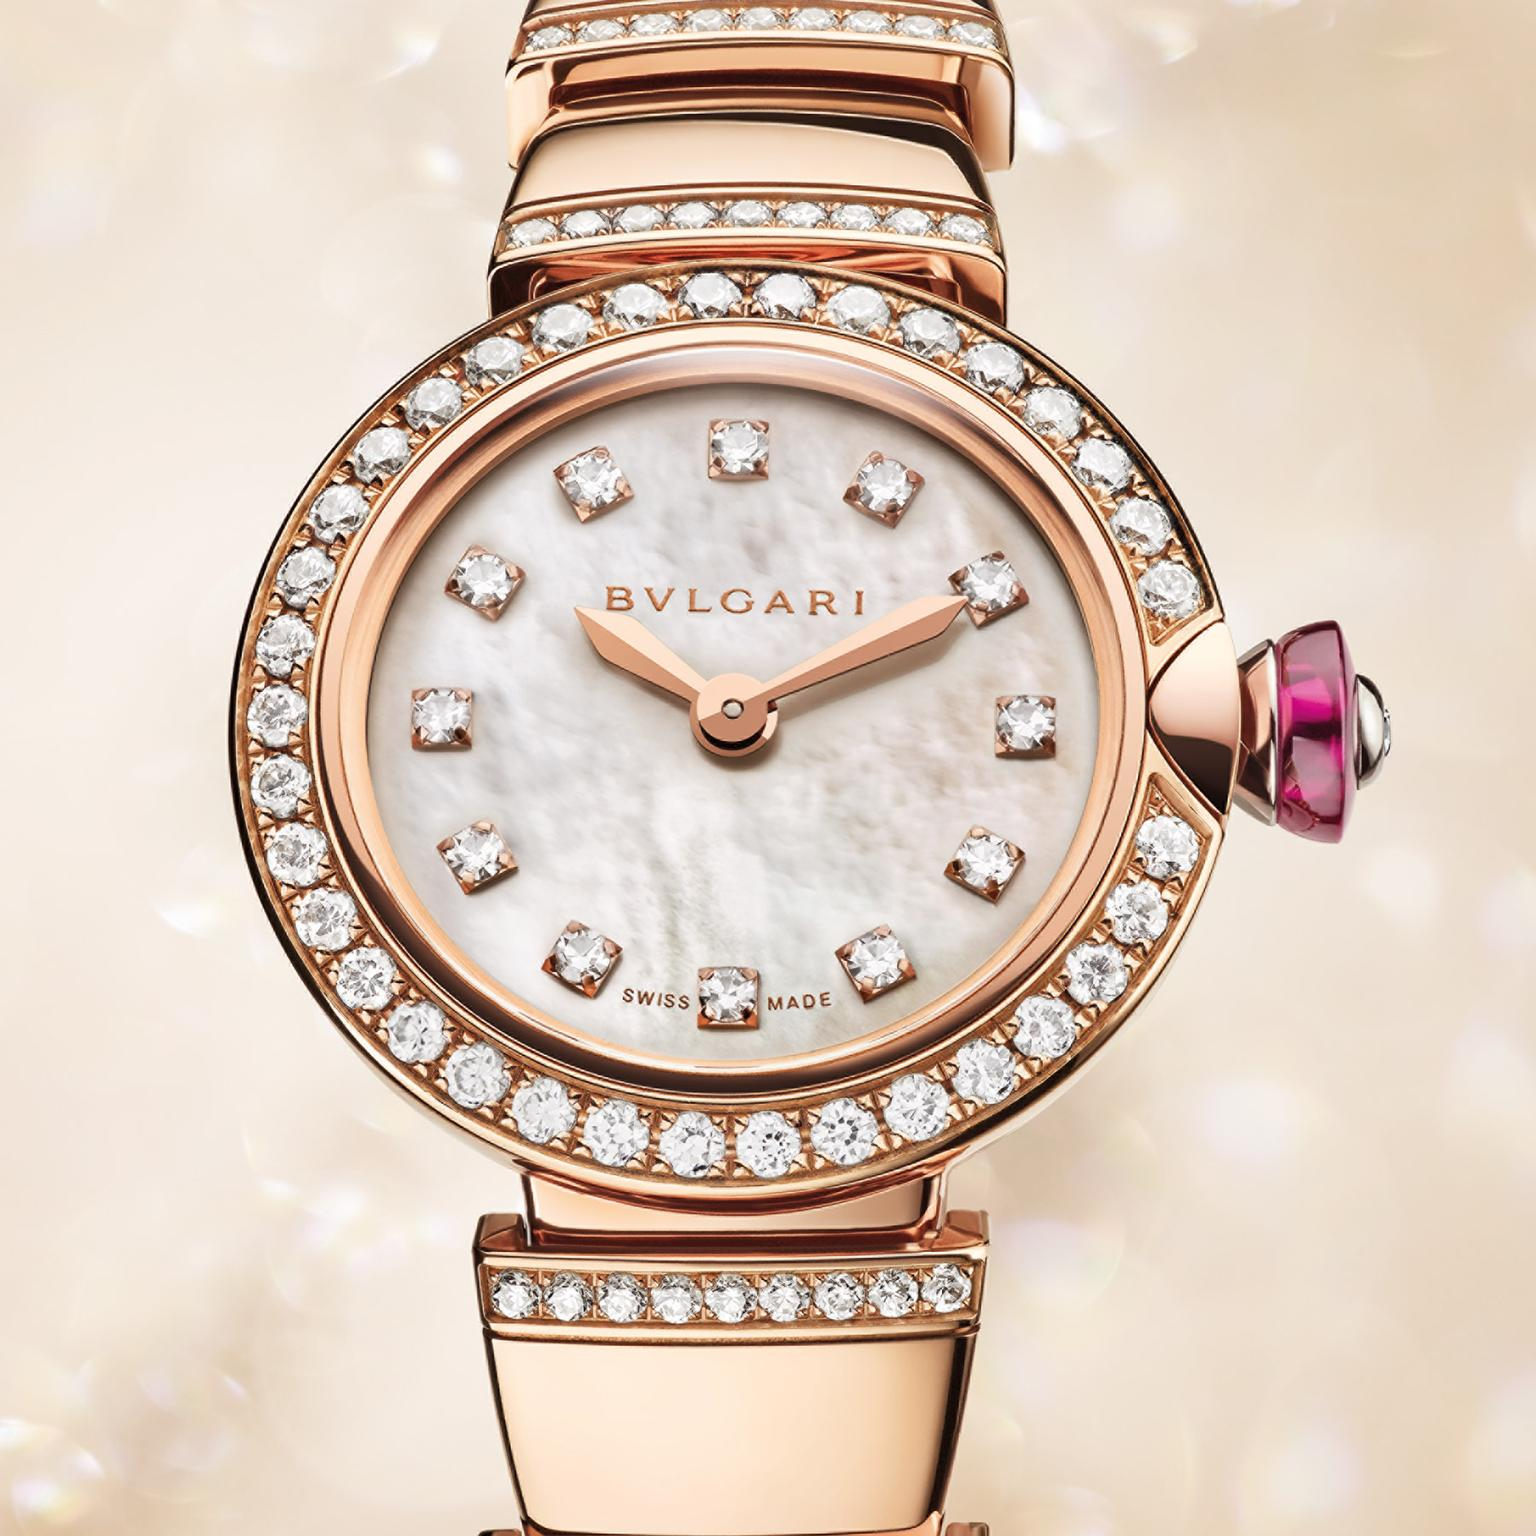 Bulgari PICCOLA LVCEA watch